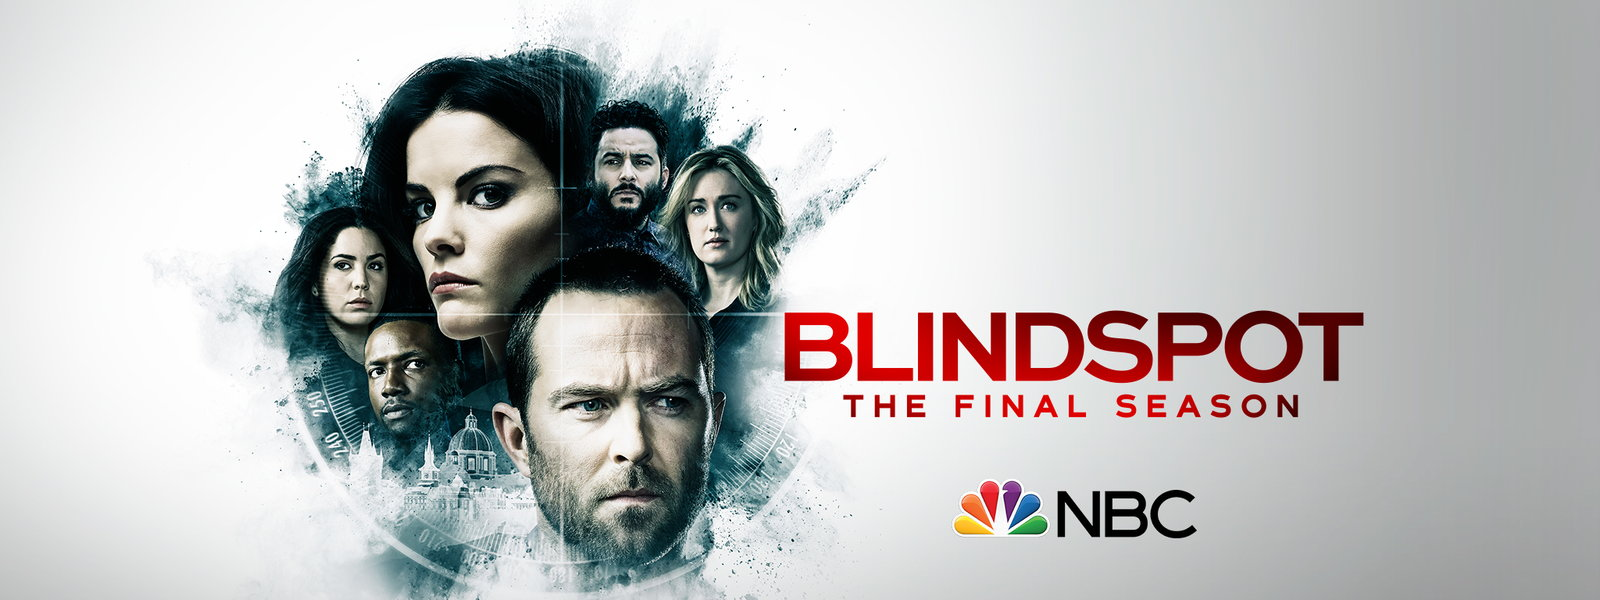 Blindspot's New Season is FIYAH